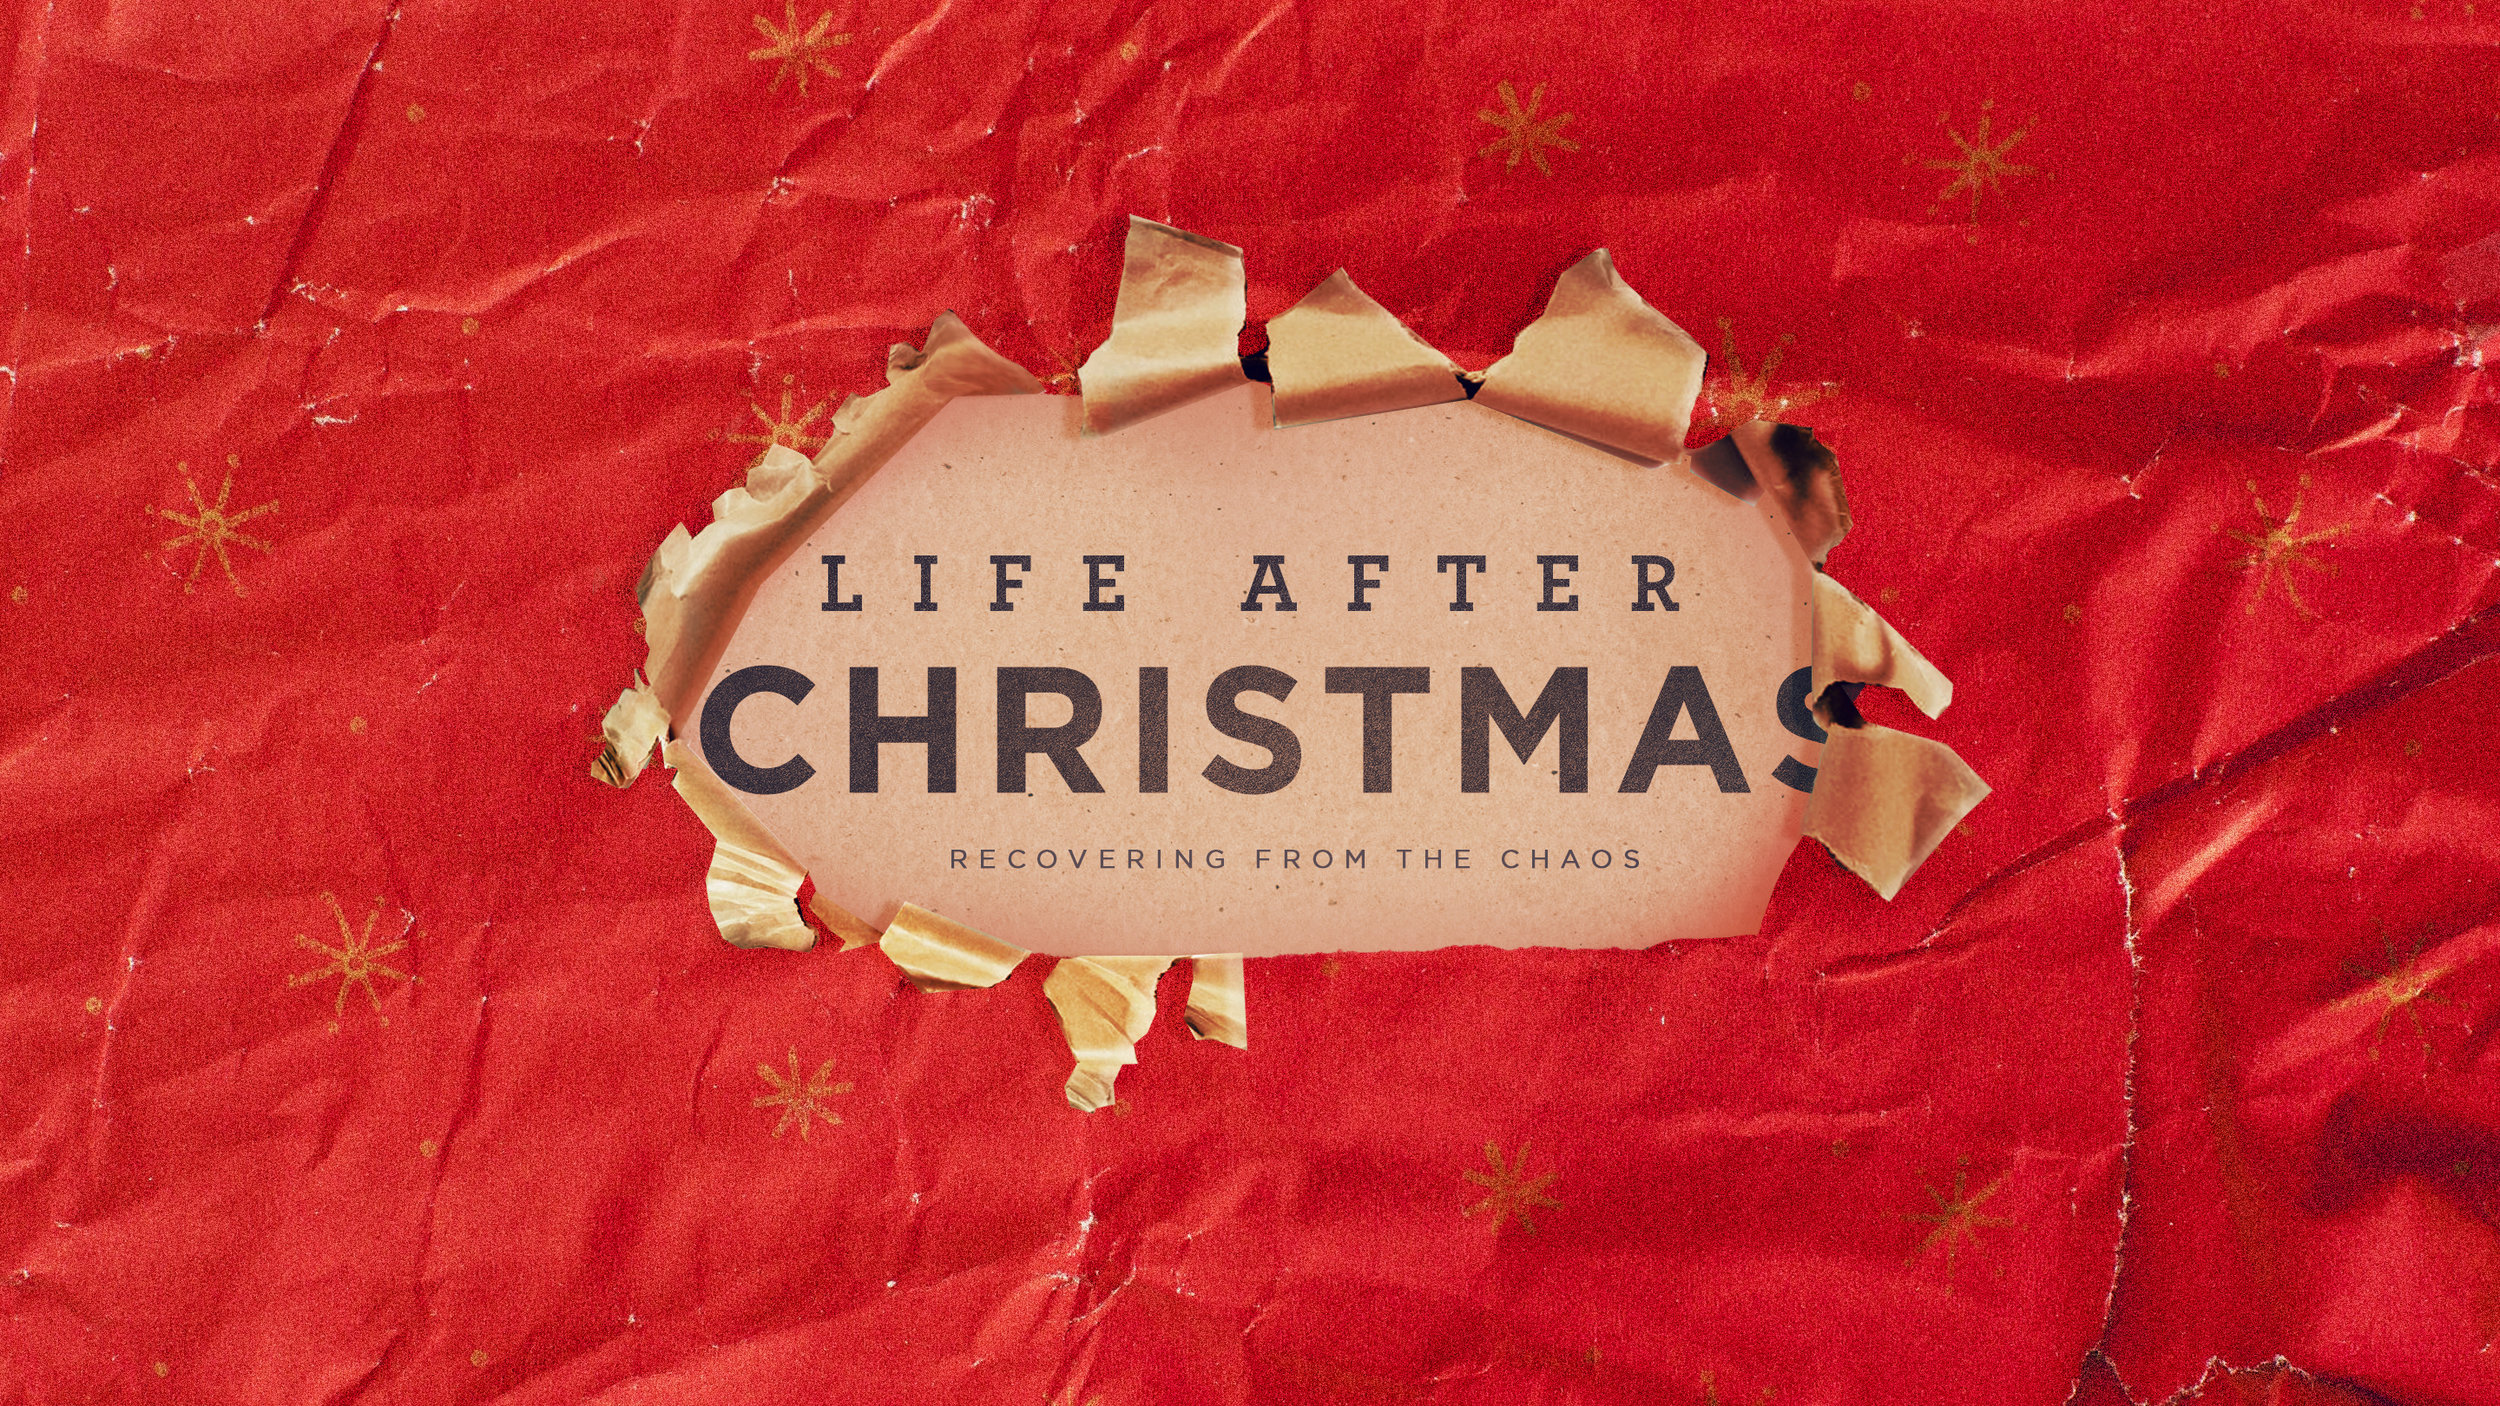 life_after_christmas-PSD.jpg